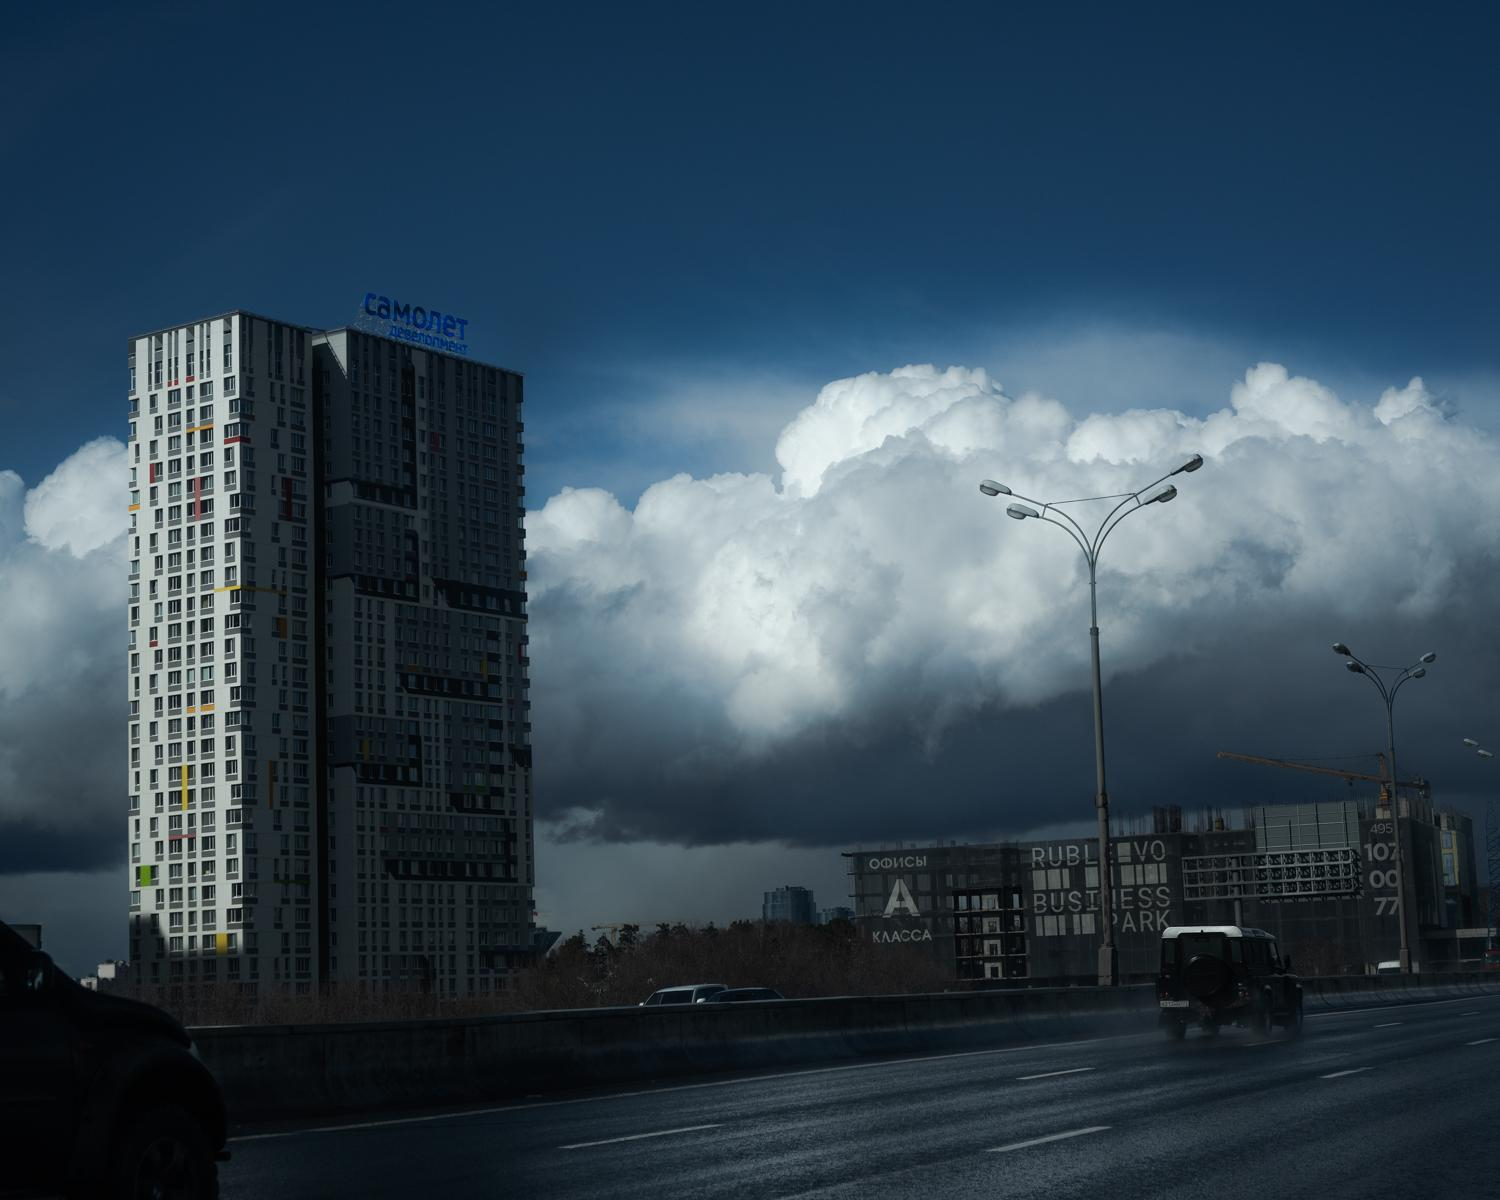 Unusual skies and behaviors of the weather in Moscow since the confinement period. The air got much cleaner, much more transparent. Moscow. Russia. April 2020. © Stoyan Vassev